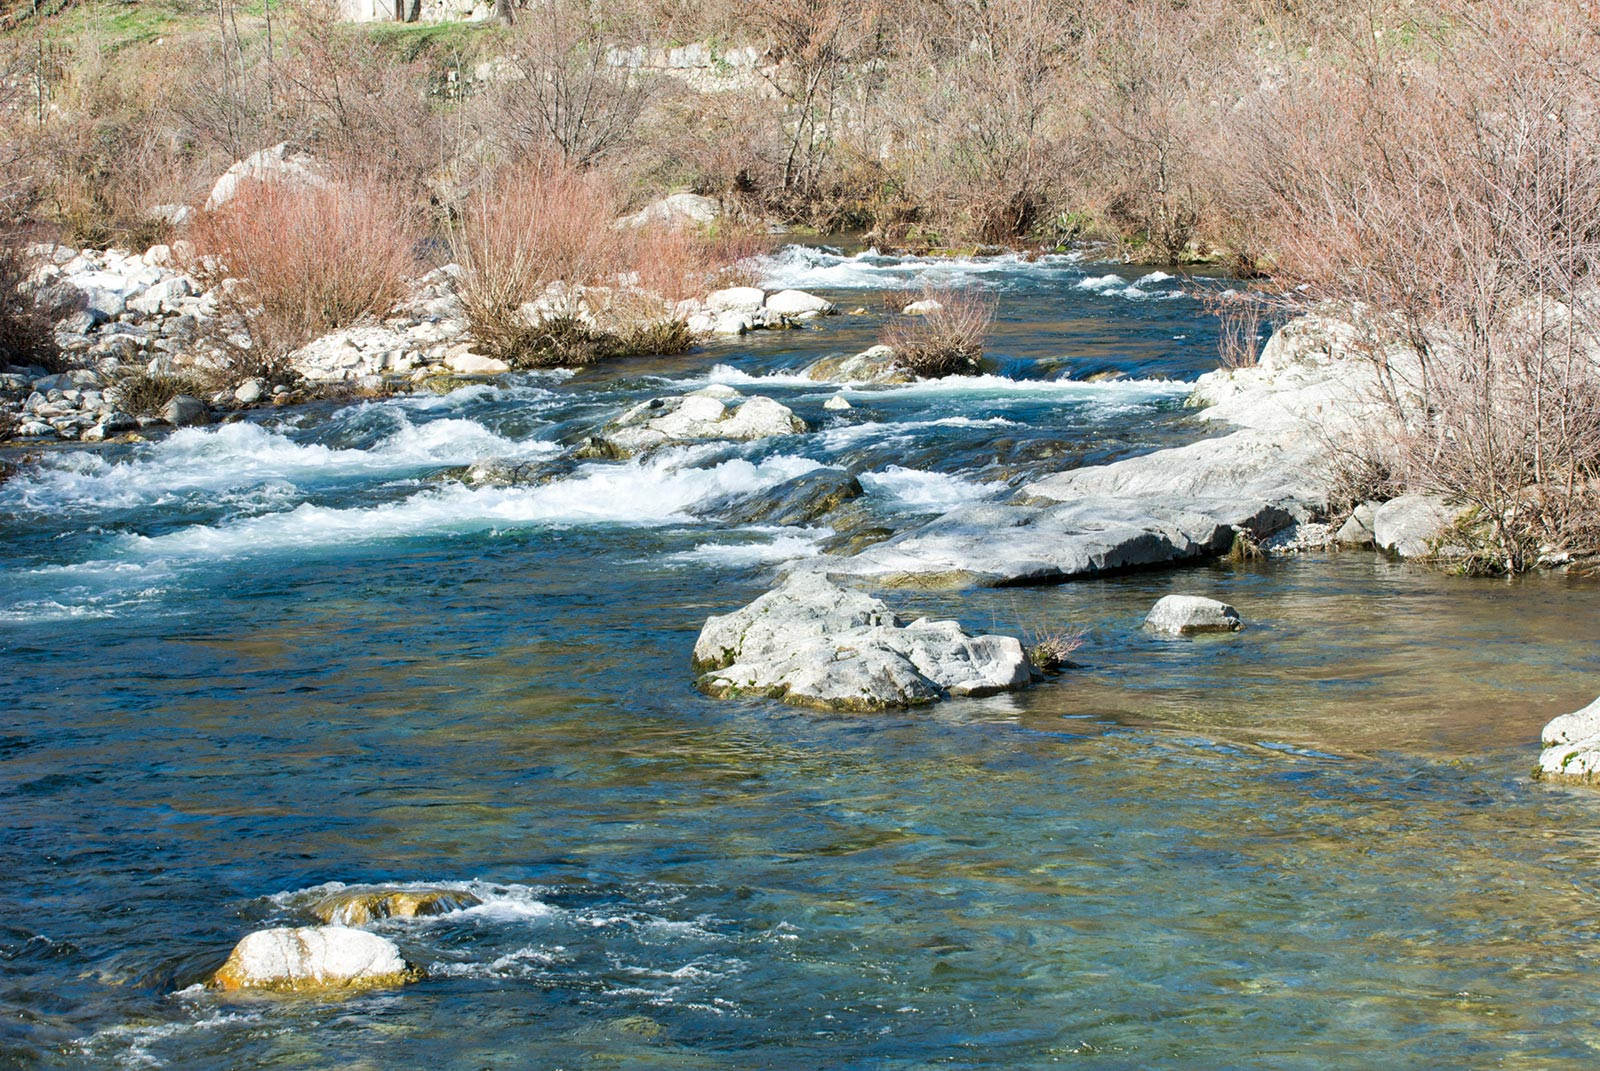 The river Gardon near Anduze very close to our hotel restaurant